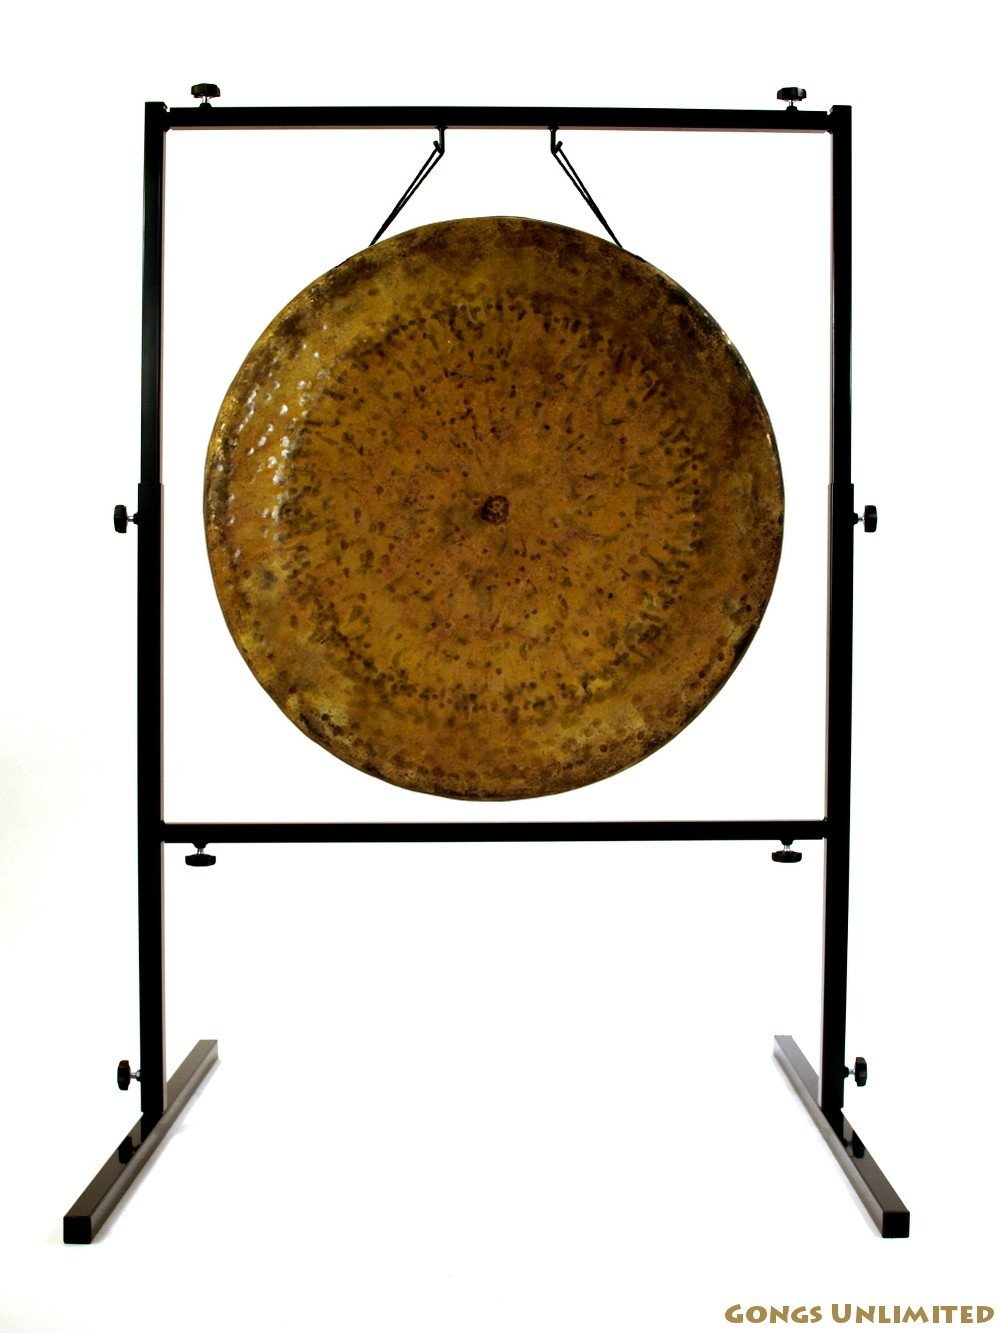 22'' to 26'' Gongs on the Rambo Rimbaud Gong Stand